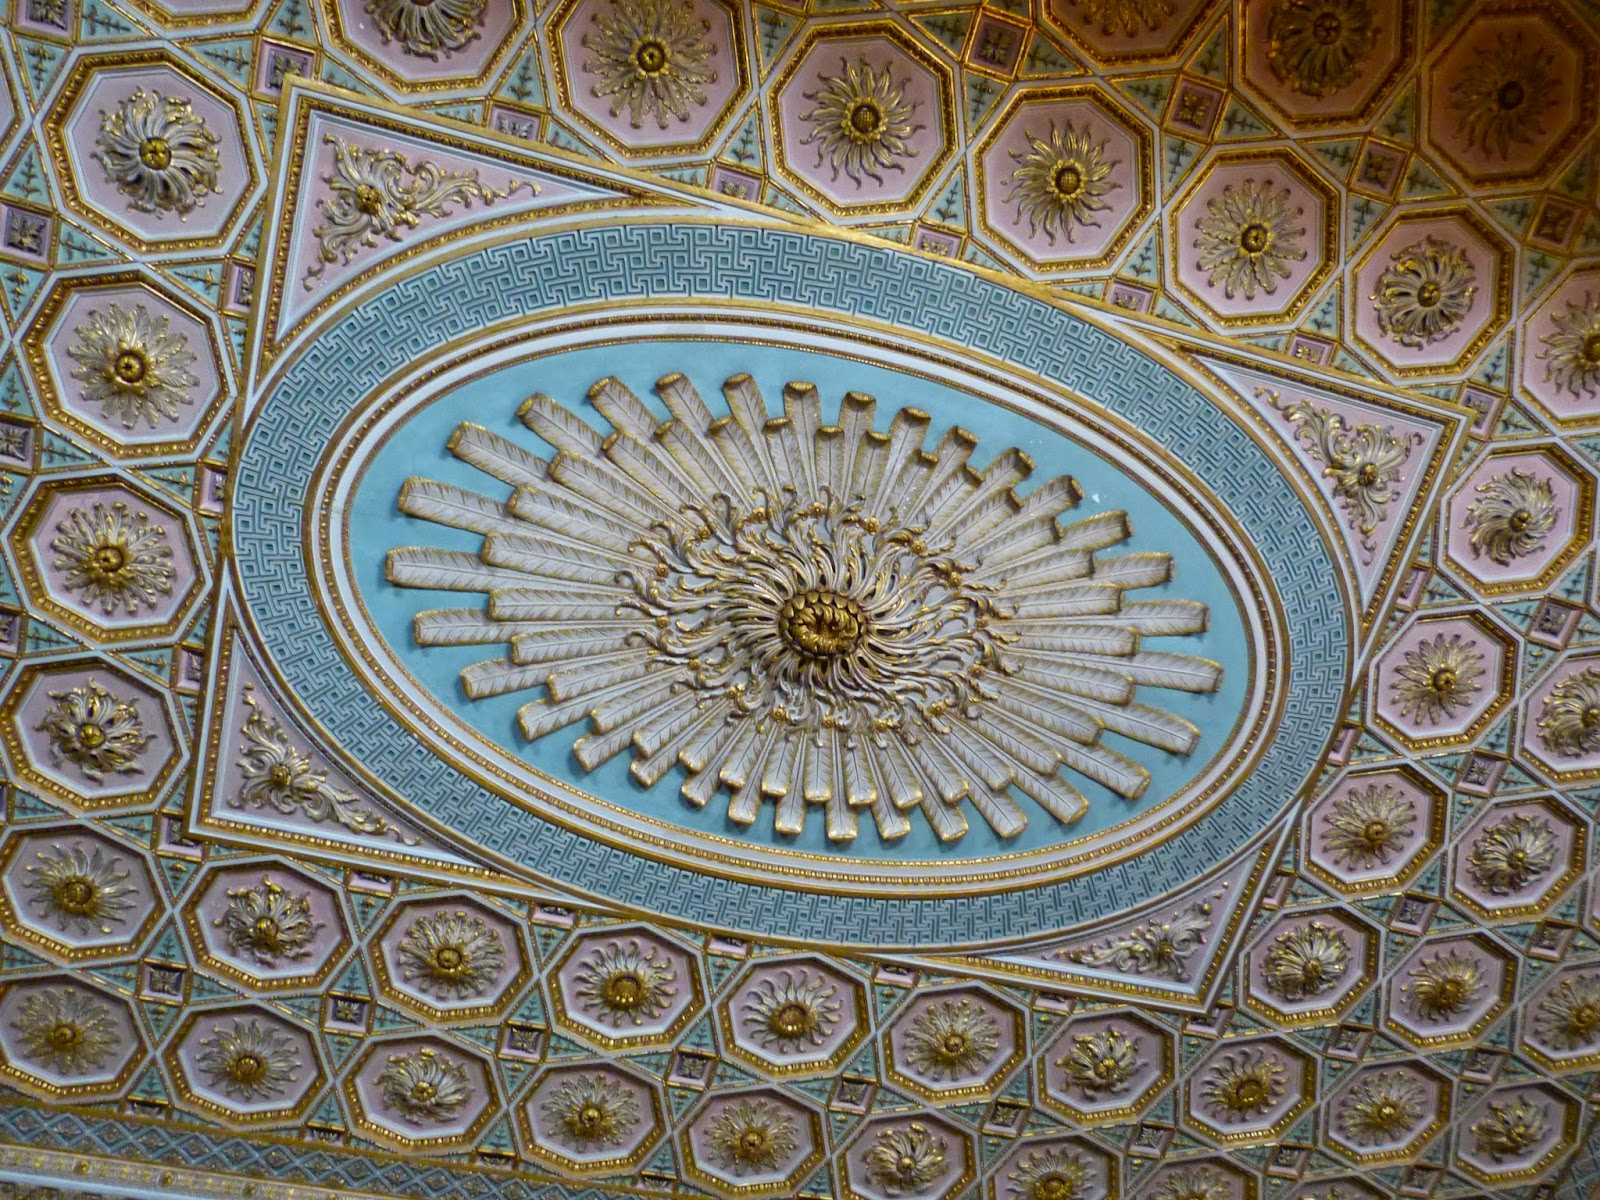 The ceiling in the Drawing Room, Osterley